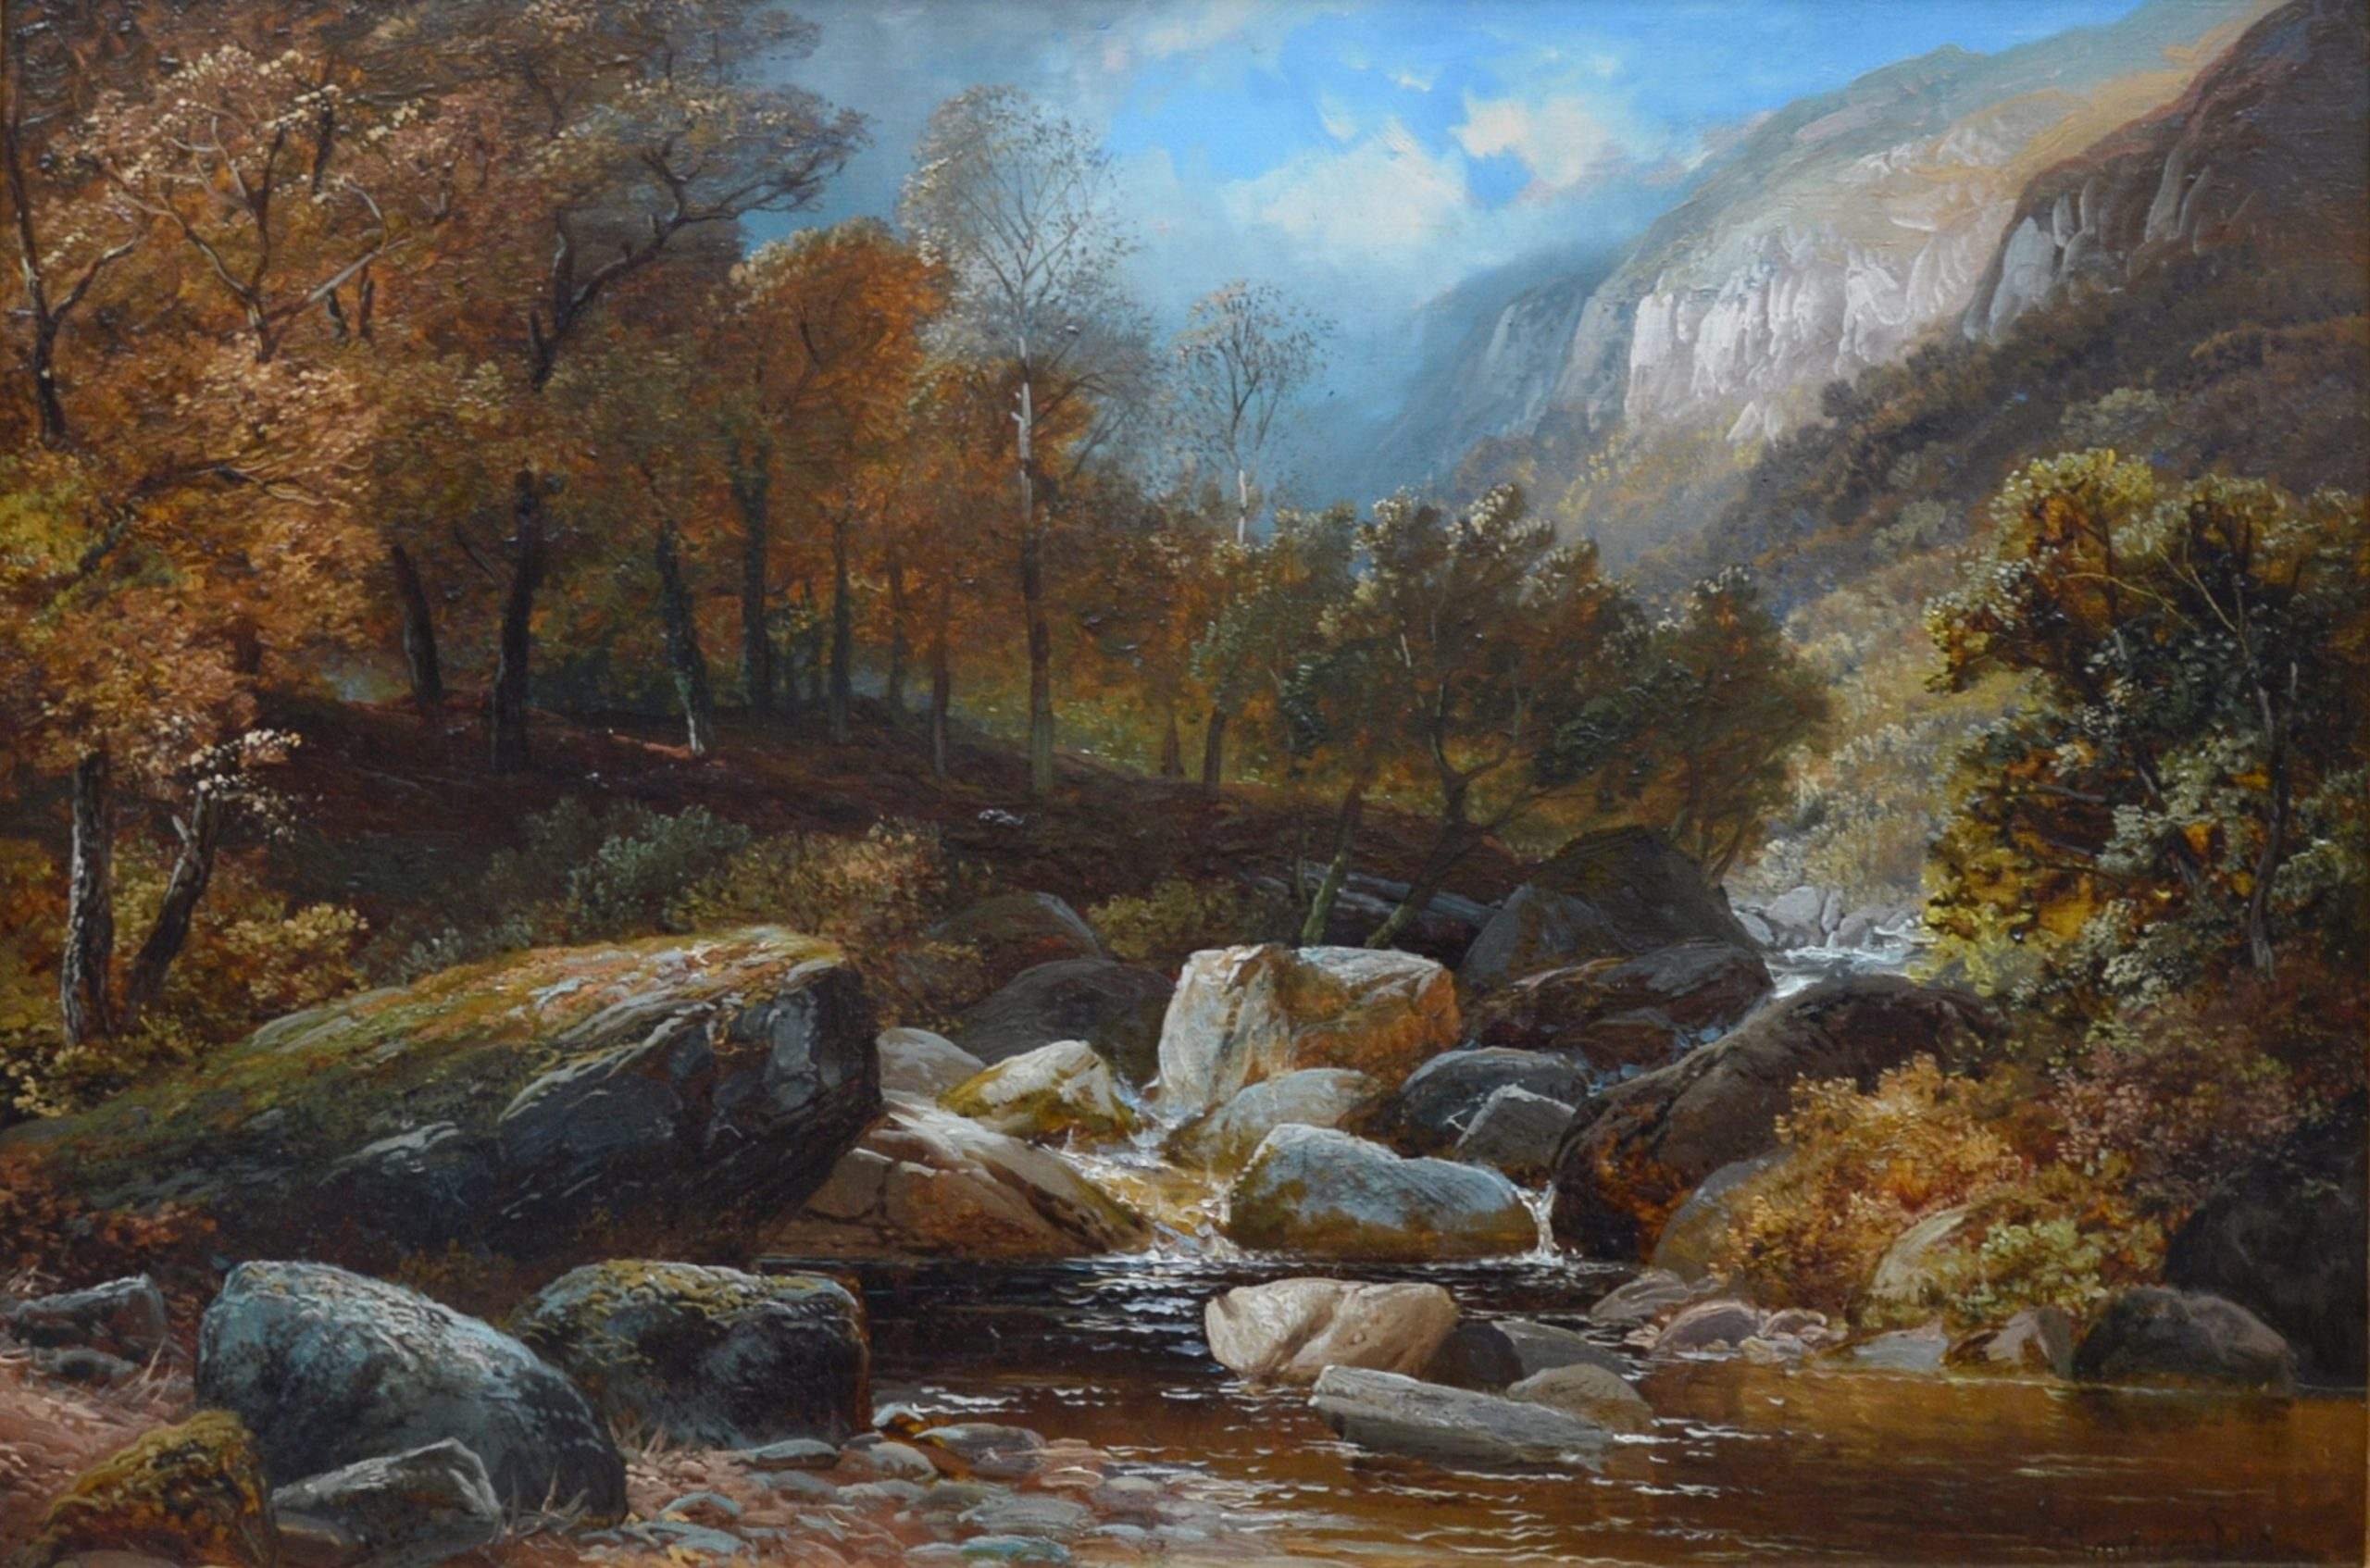 Creeping Steads, River Twiss - 19th Century Yorkshire Landscape Oil Painting Image